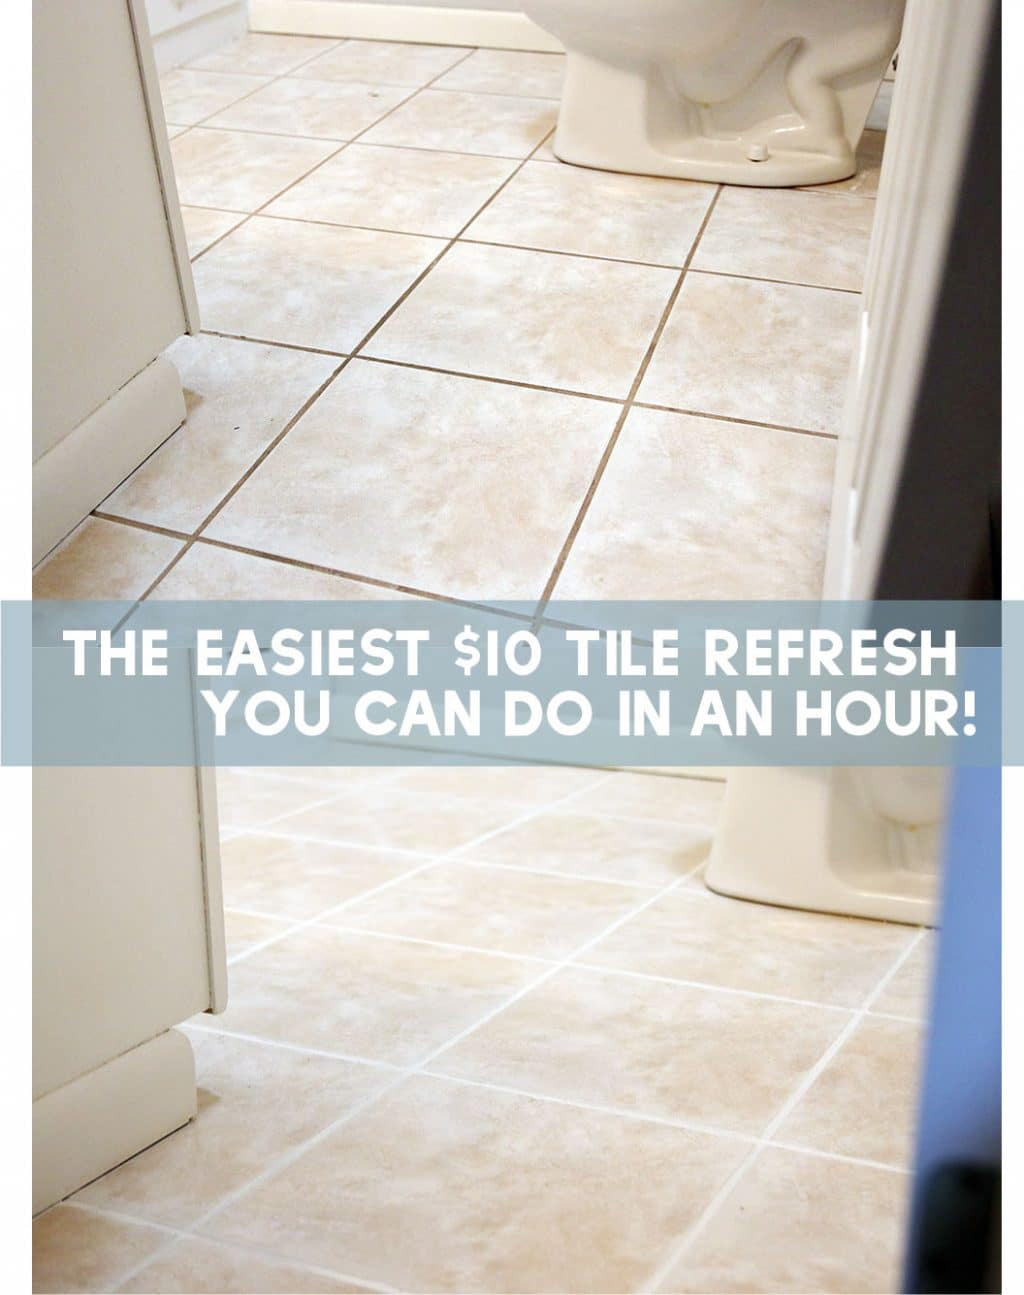 How To Make Your Grout Look New In An Afternoon For 10 Chris